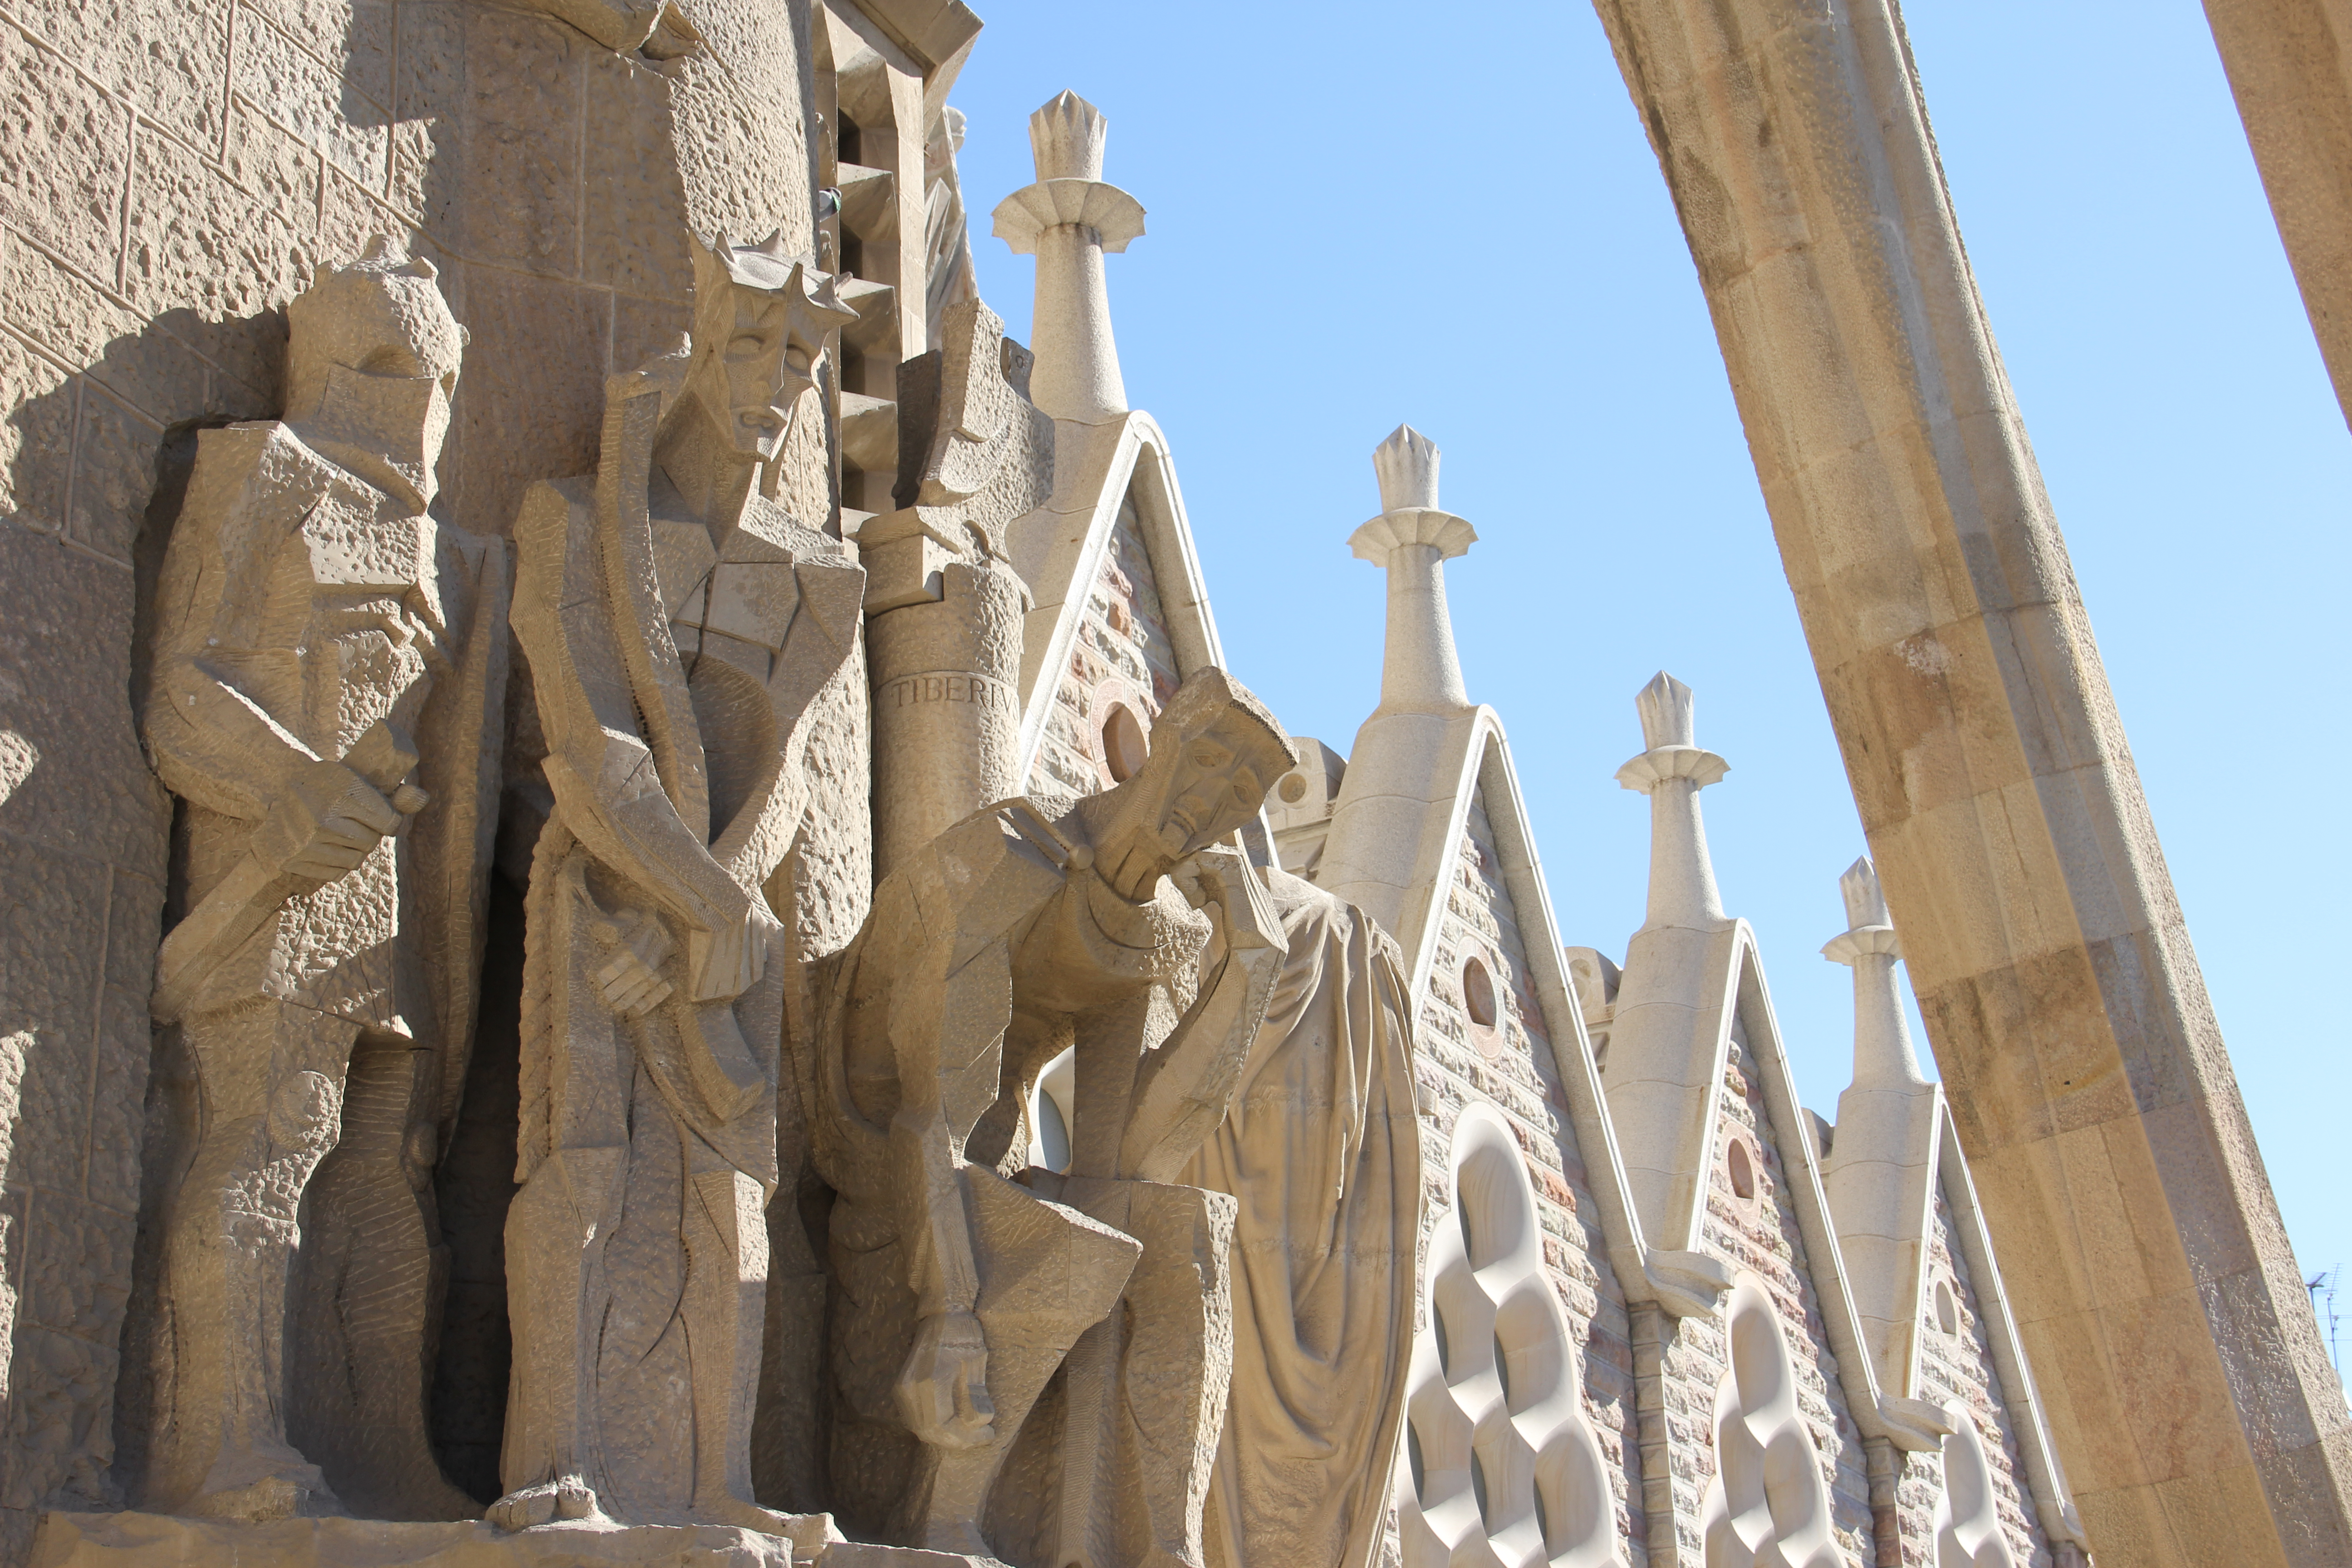 Outside La Sagrada Familia in Photos